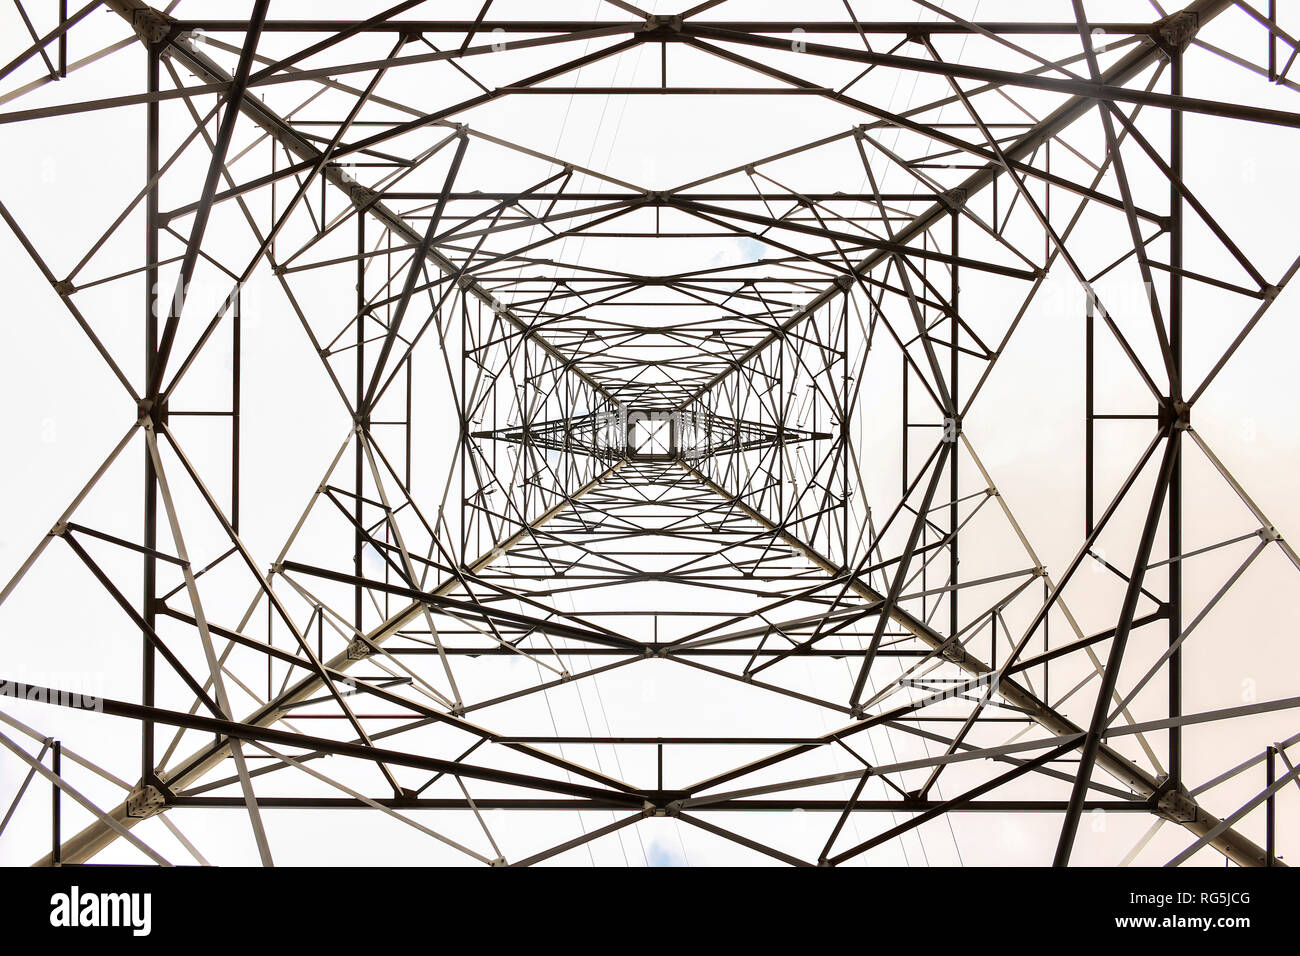 High-voltage power transmission tower, abstract,  background - Stock Image